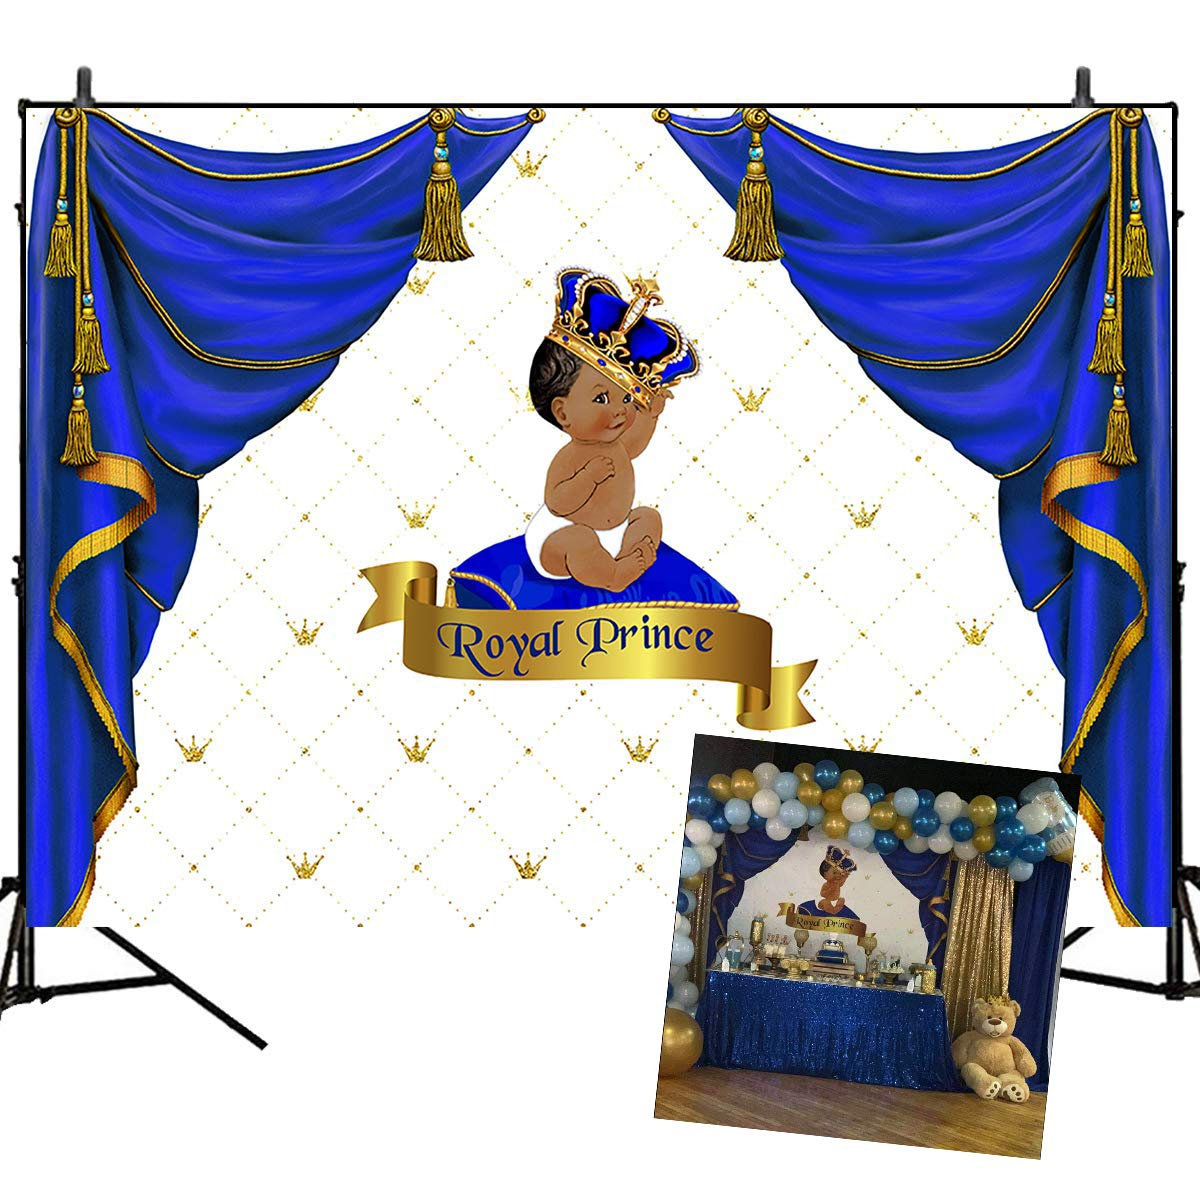 baby shower backdrops royal prince background blue curtain decorated baby birthday party banner decoration 7 5ft vinyl newborn baby photography props